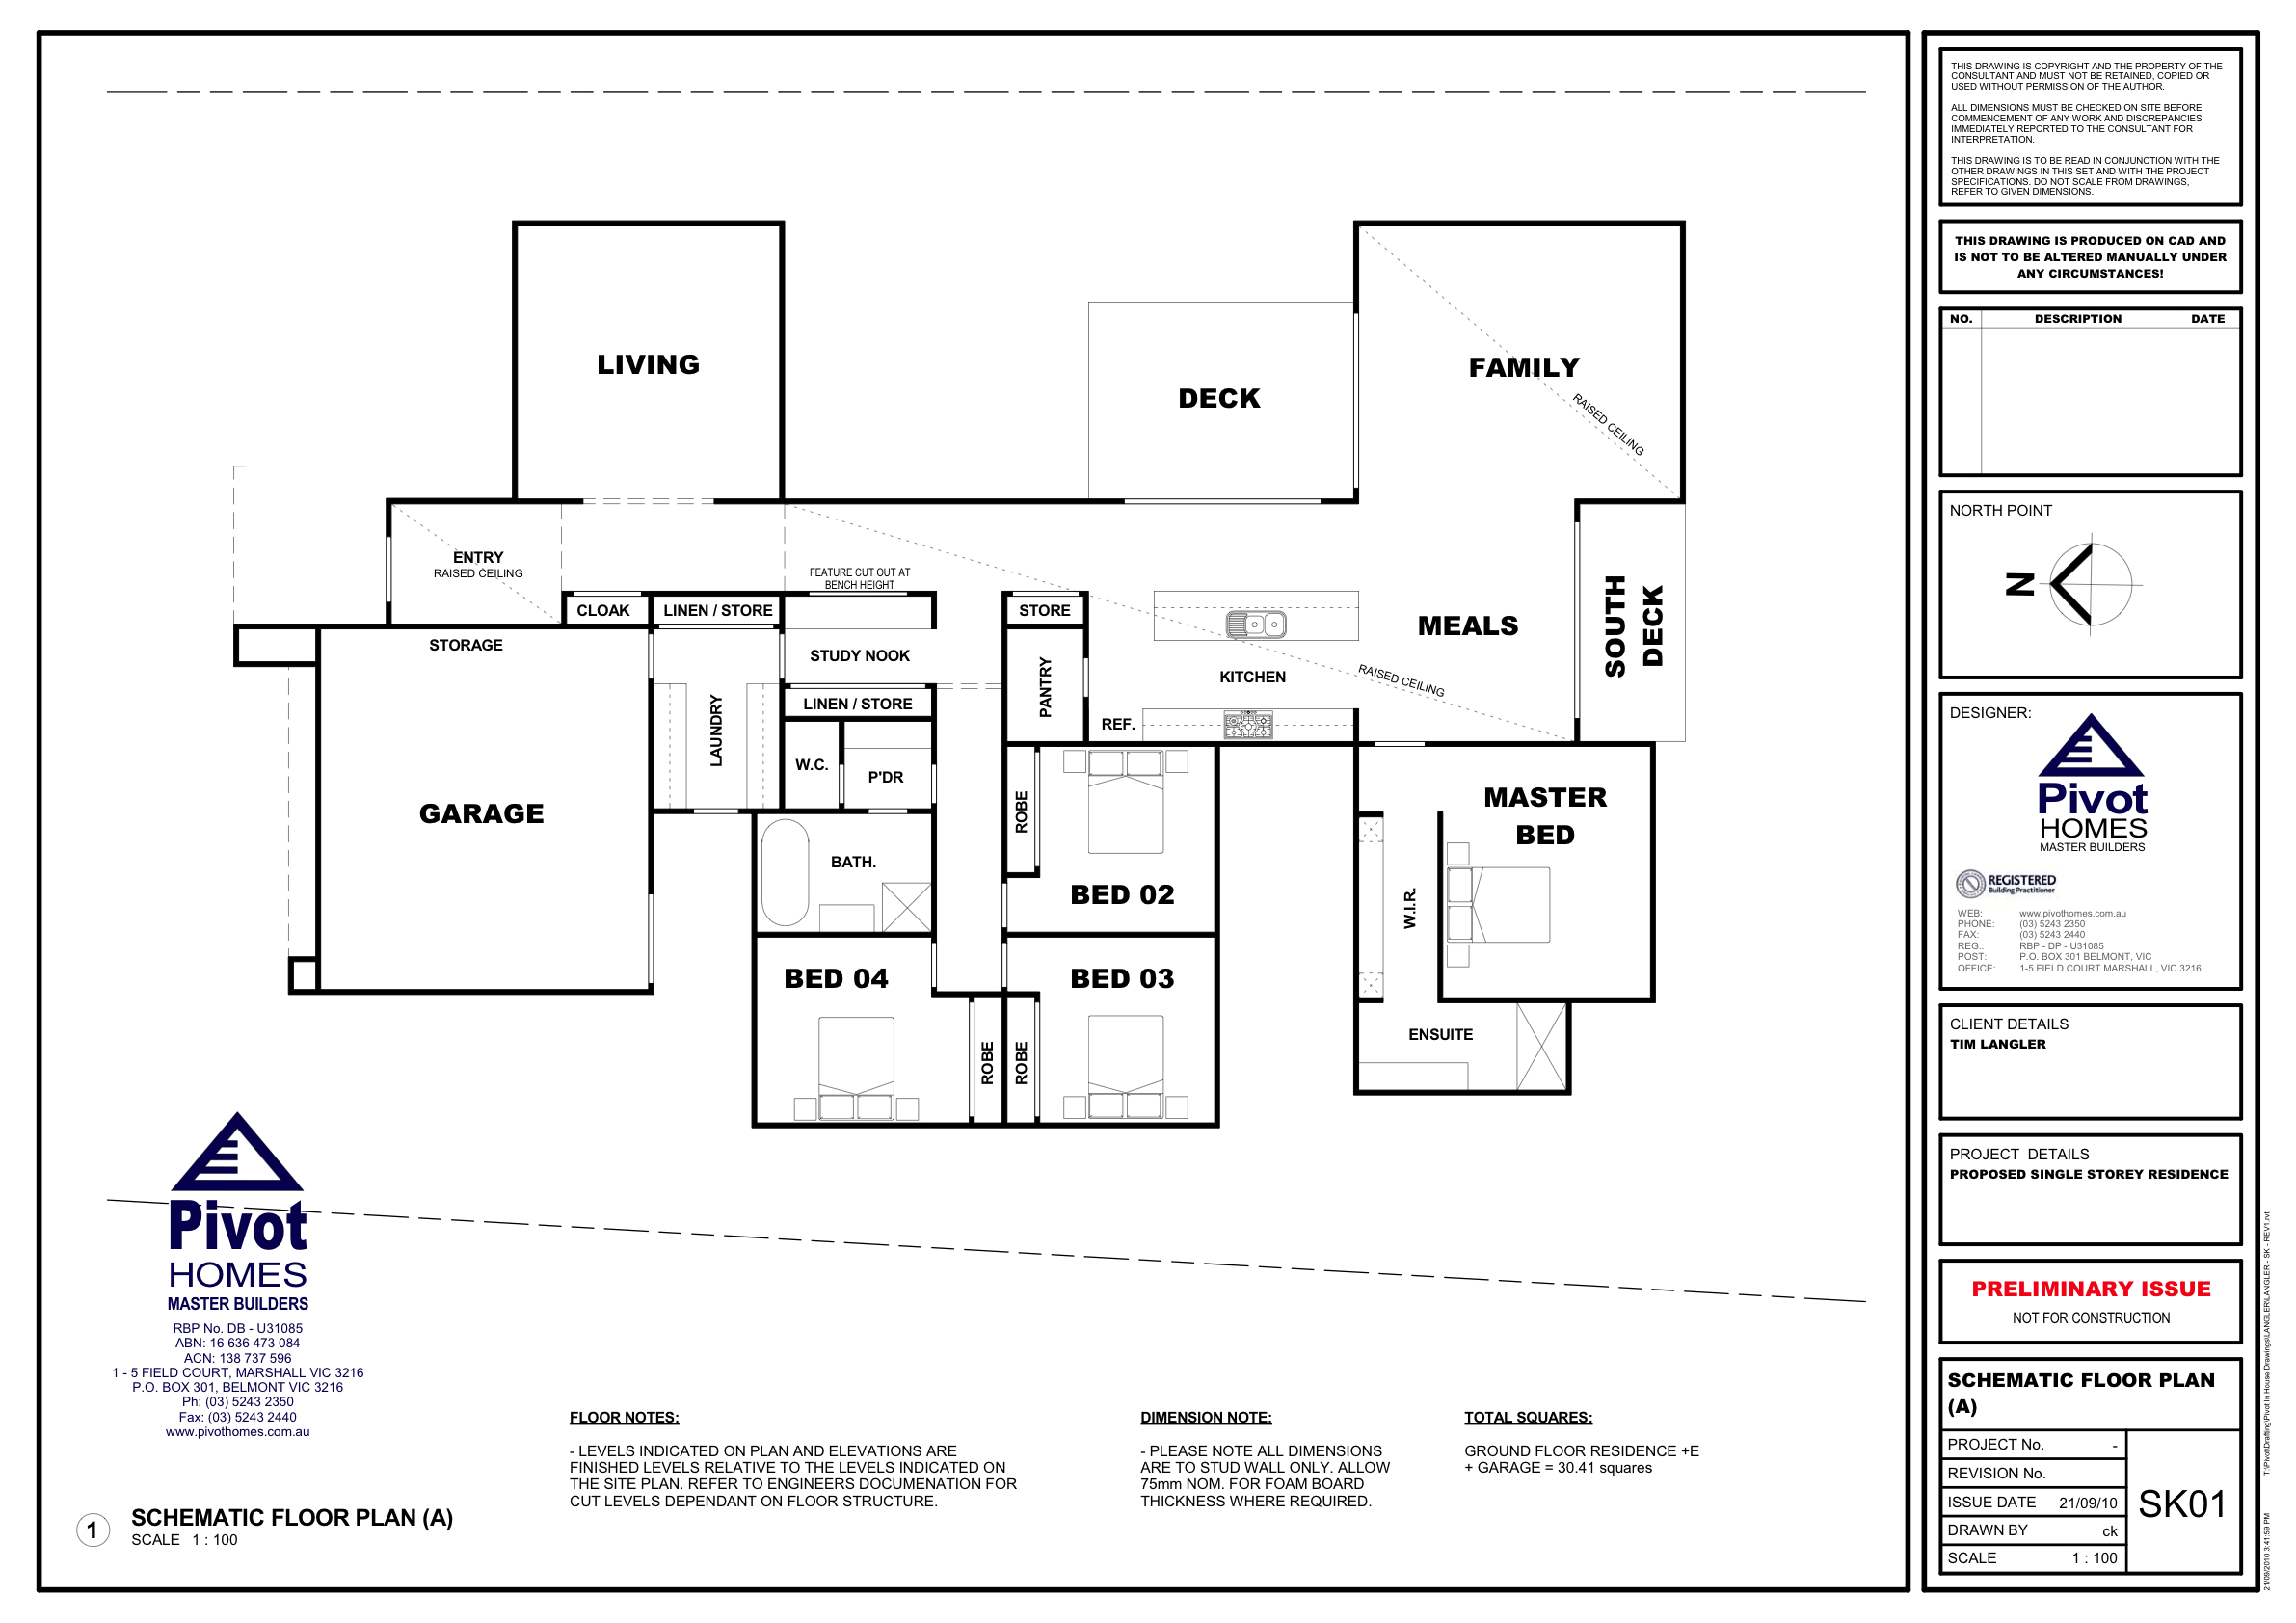 Floor Plan And Elevation Symbols : The building process with pivot homes lot